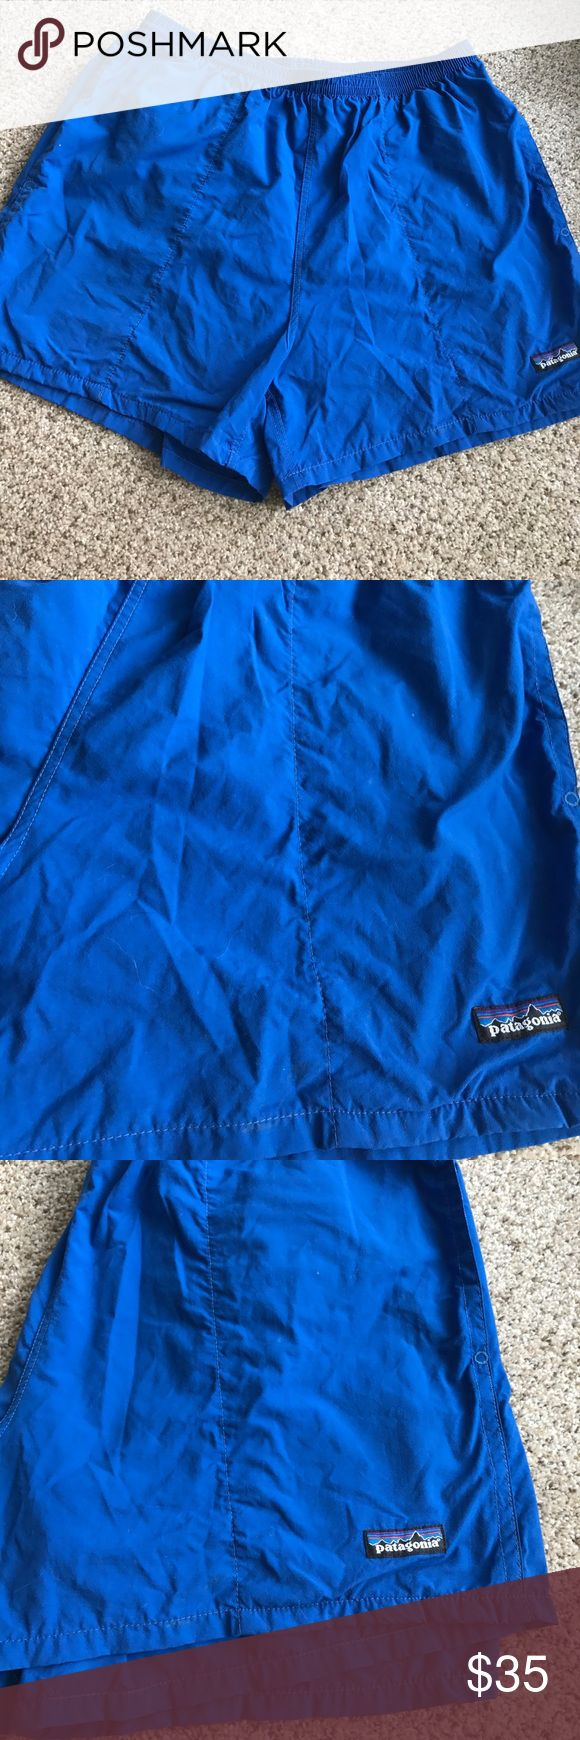 Vintage Patagonia royal blue swim shorts size XL Size XL. Patagonia vintage. Side pockets and pocket on the right back pocket. Great condition Patagonia Shorts